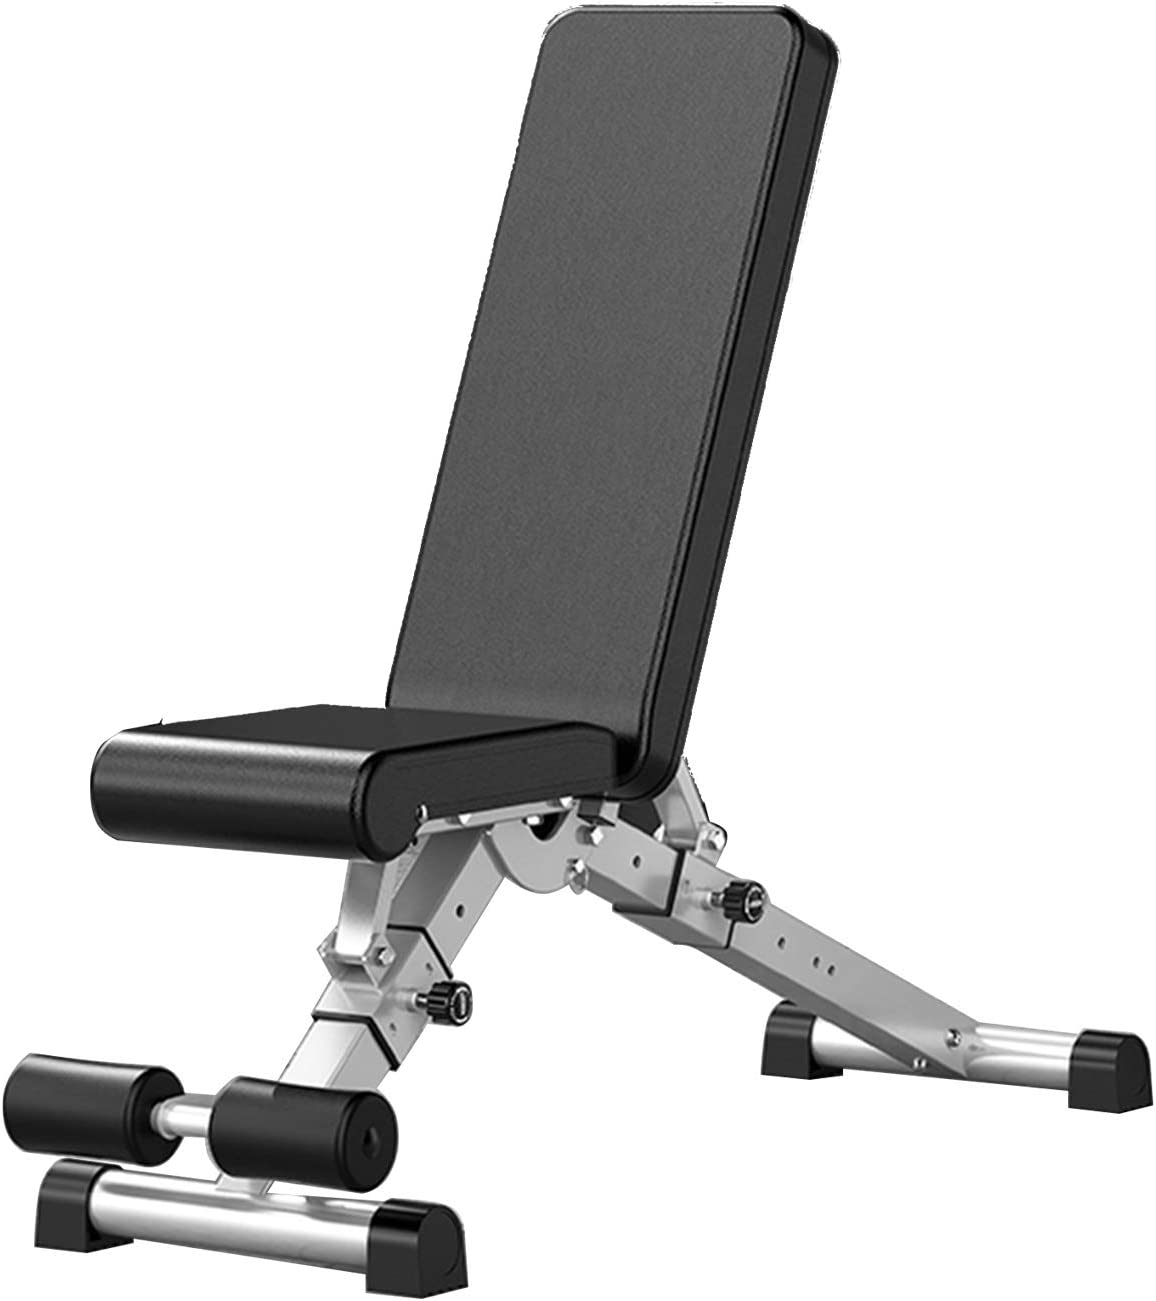 LIQIANG Latest item Adjustable Weight Bench f Foldable - Multi-Purpose Don't miss the campaign